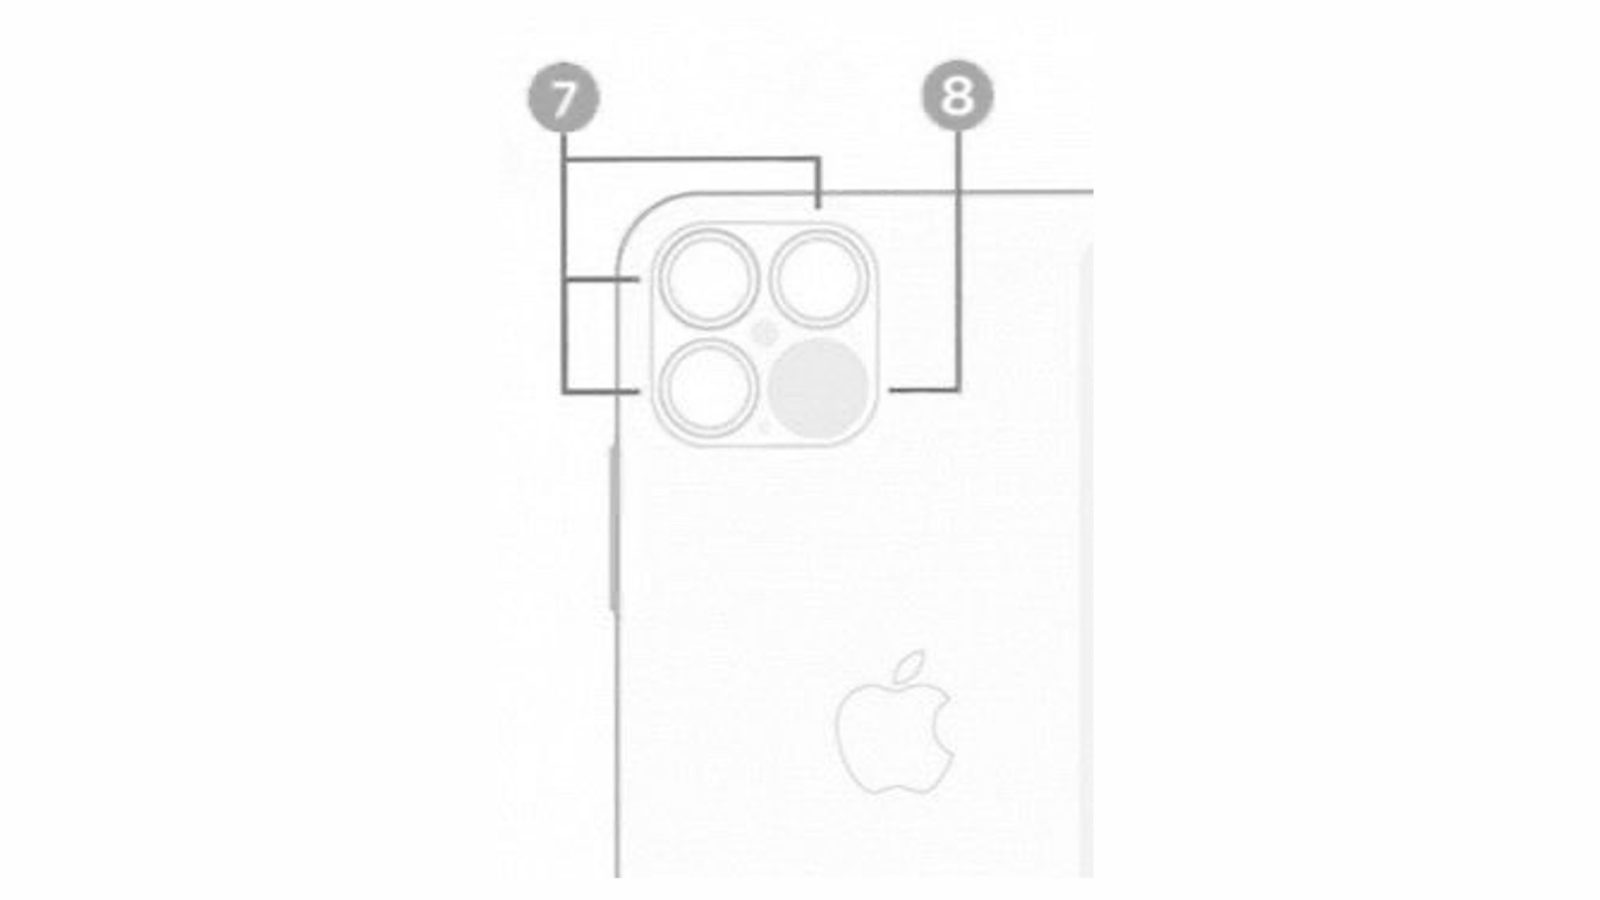 Leaked image shows off apparent iPhone 12 Pro with triple lens camera and LiDAR  Scanner - 9to5Mac